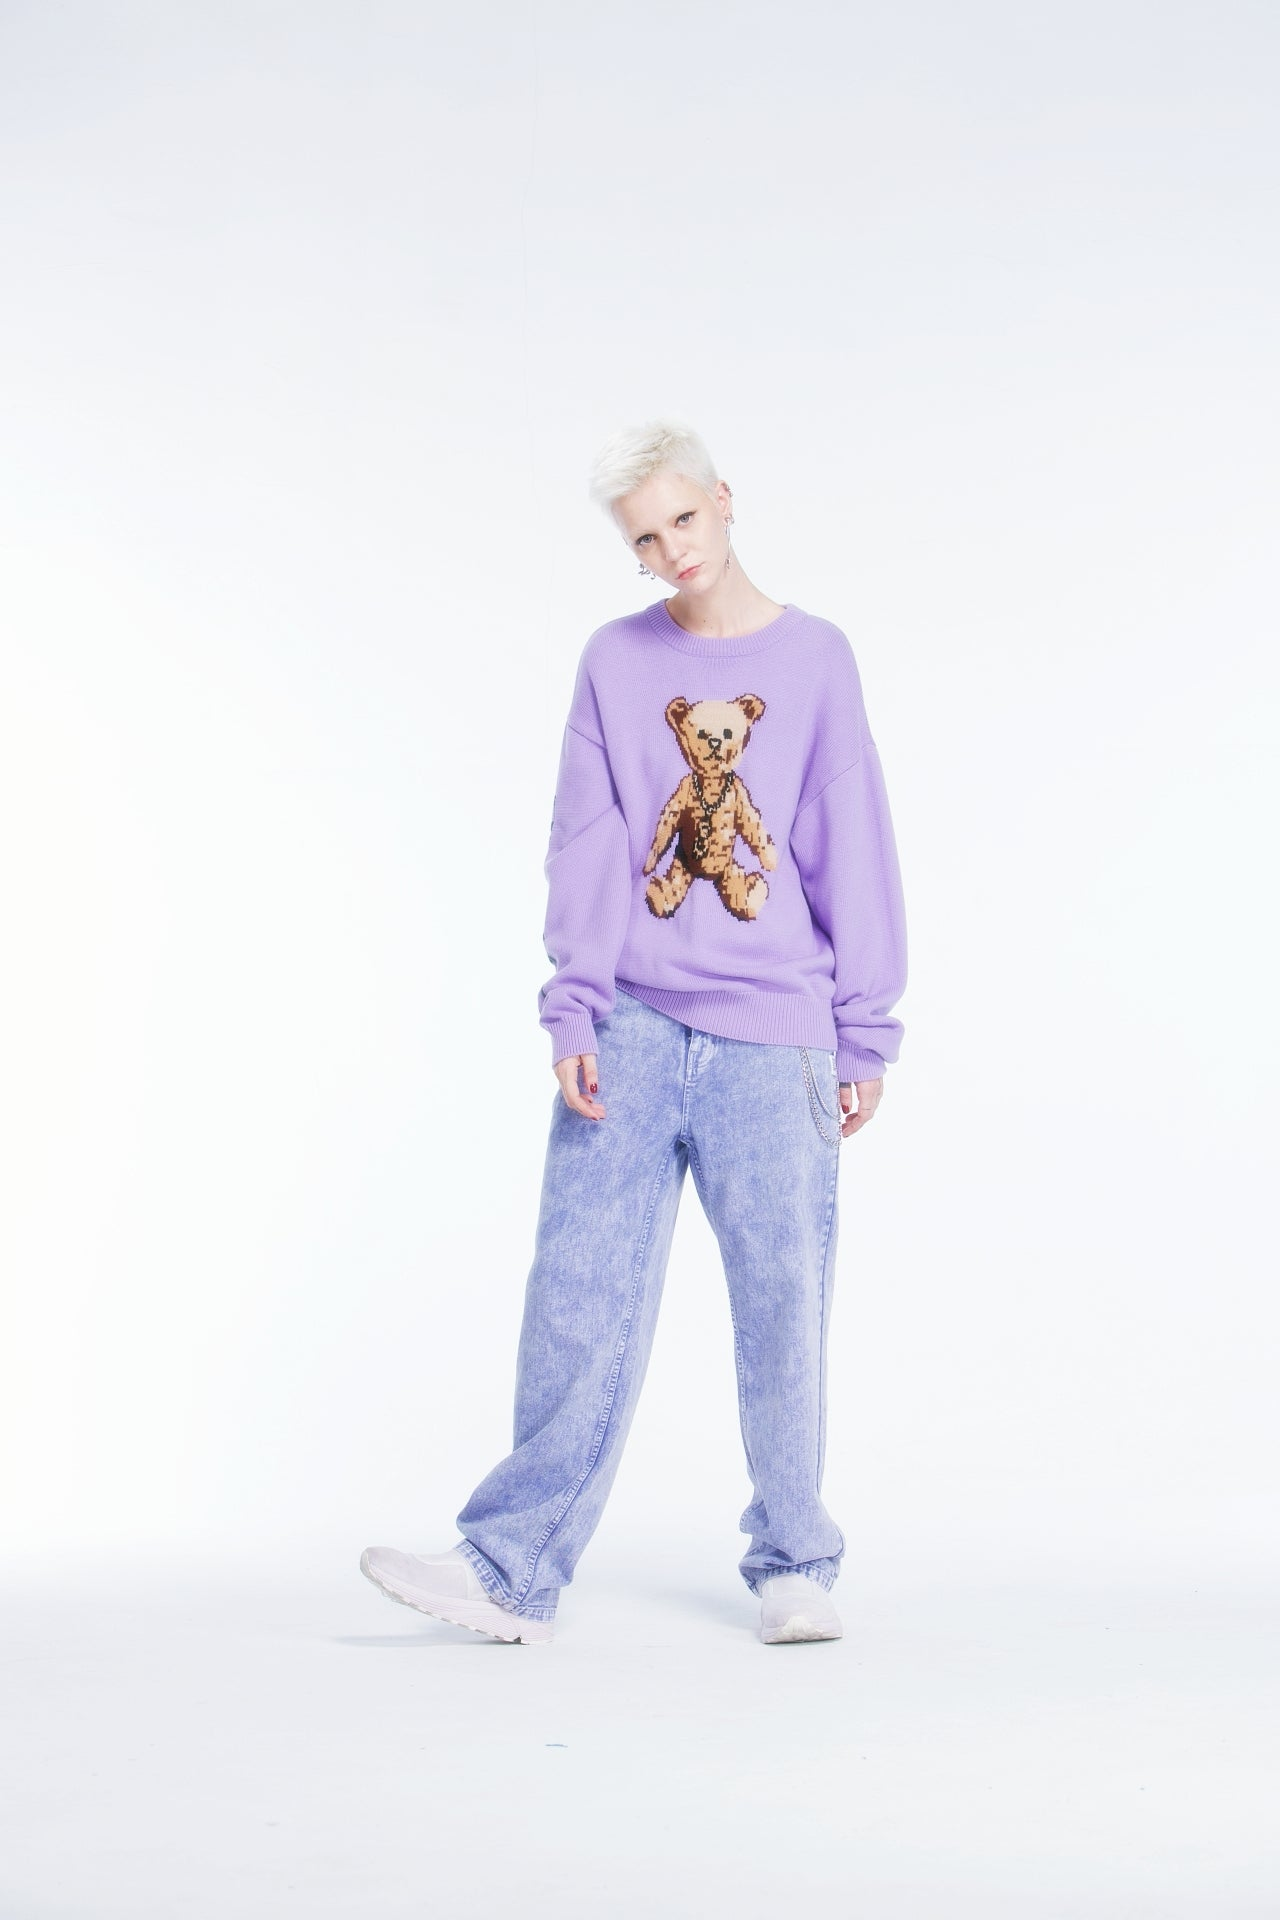 Joyrich The Big Teddy Knit Sweater</Br>Purple</Br>